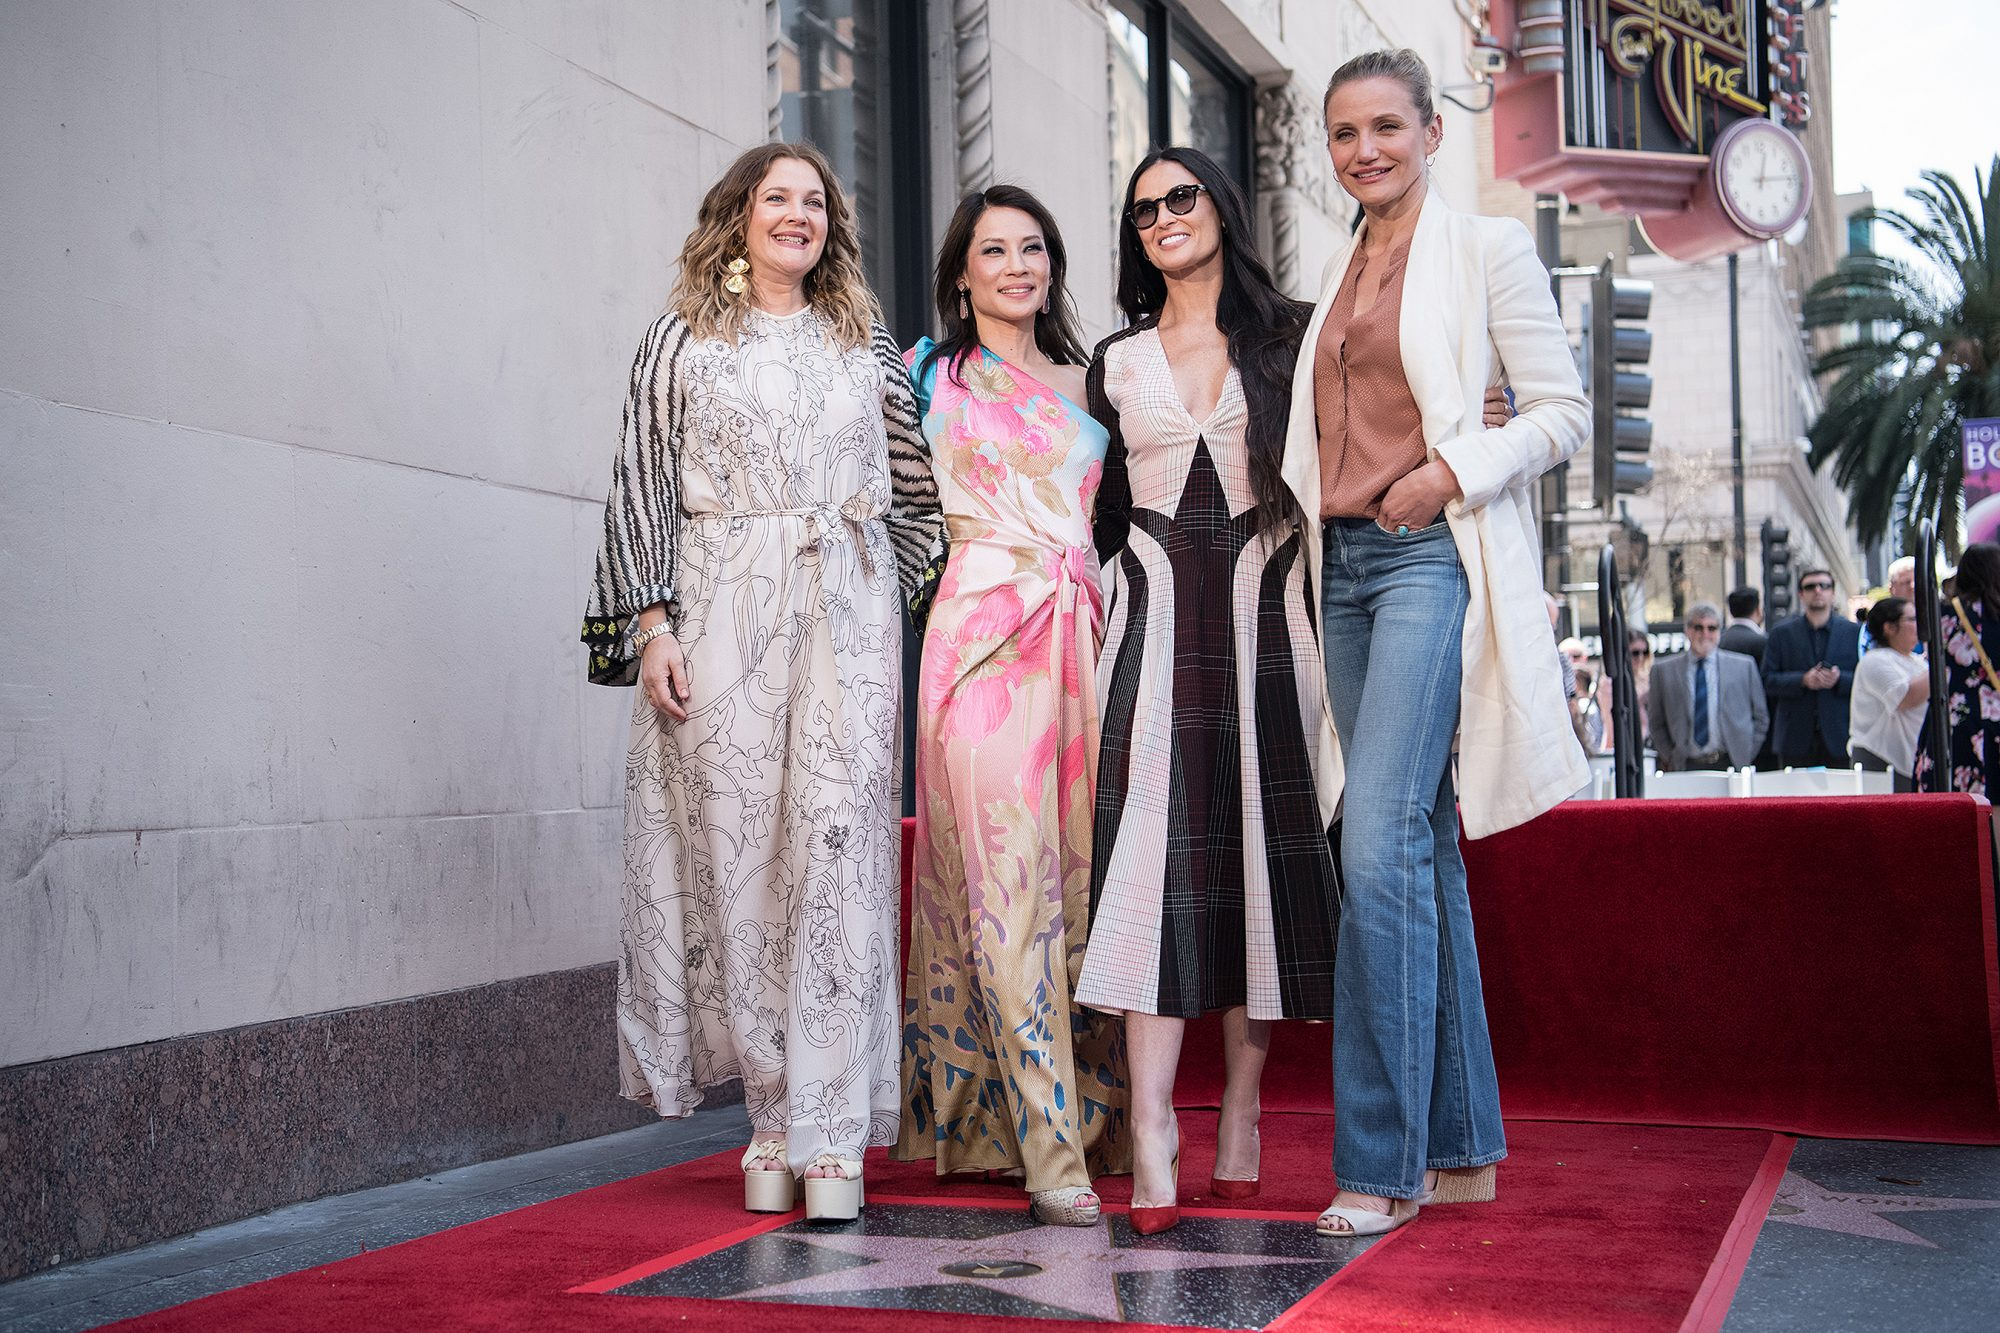 Lucy Liu's Hollywood Walk of Fame star ceremony